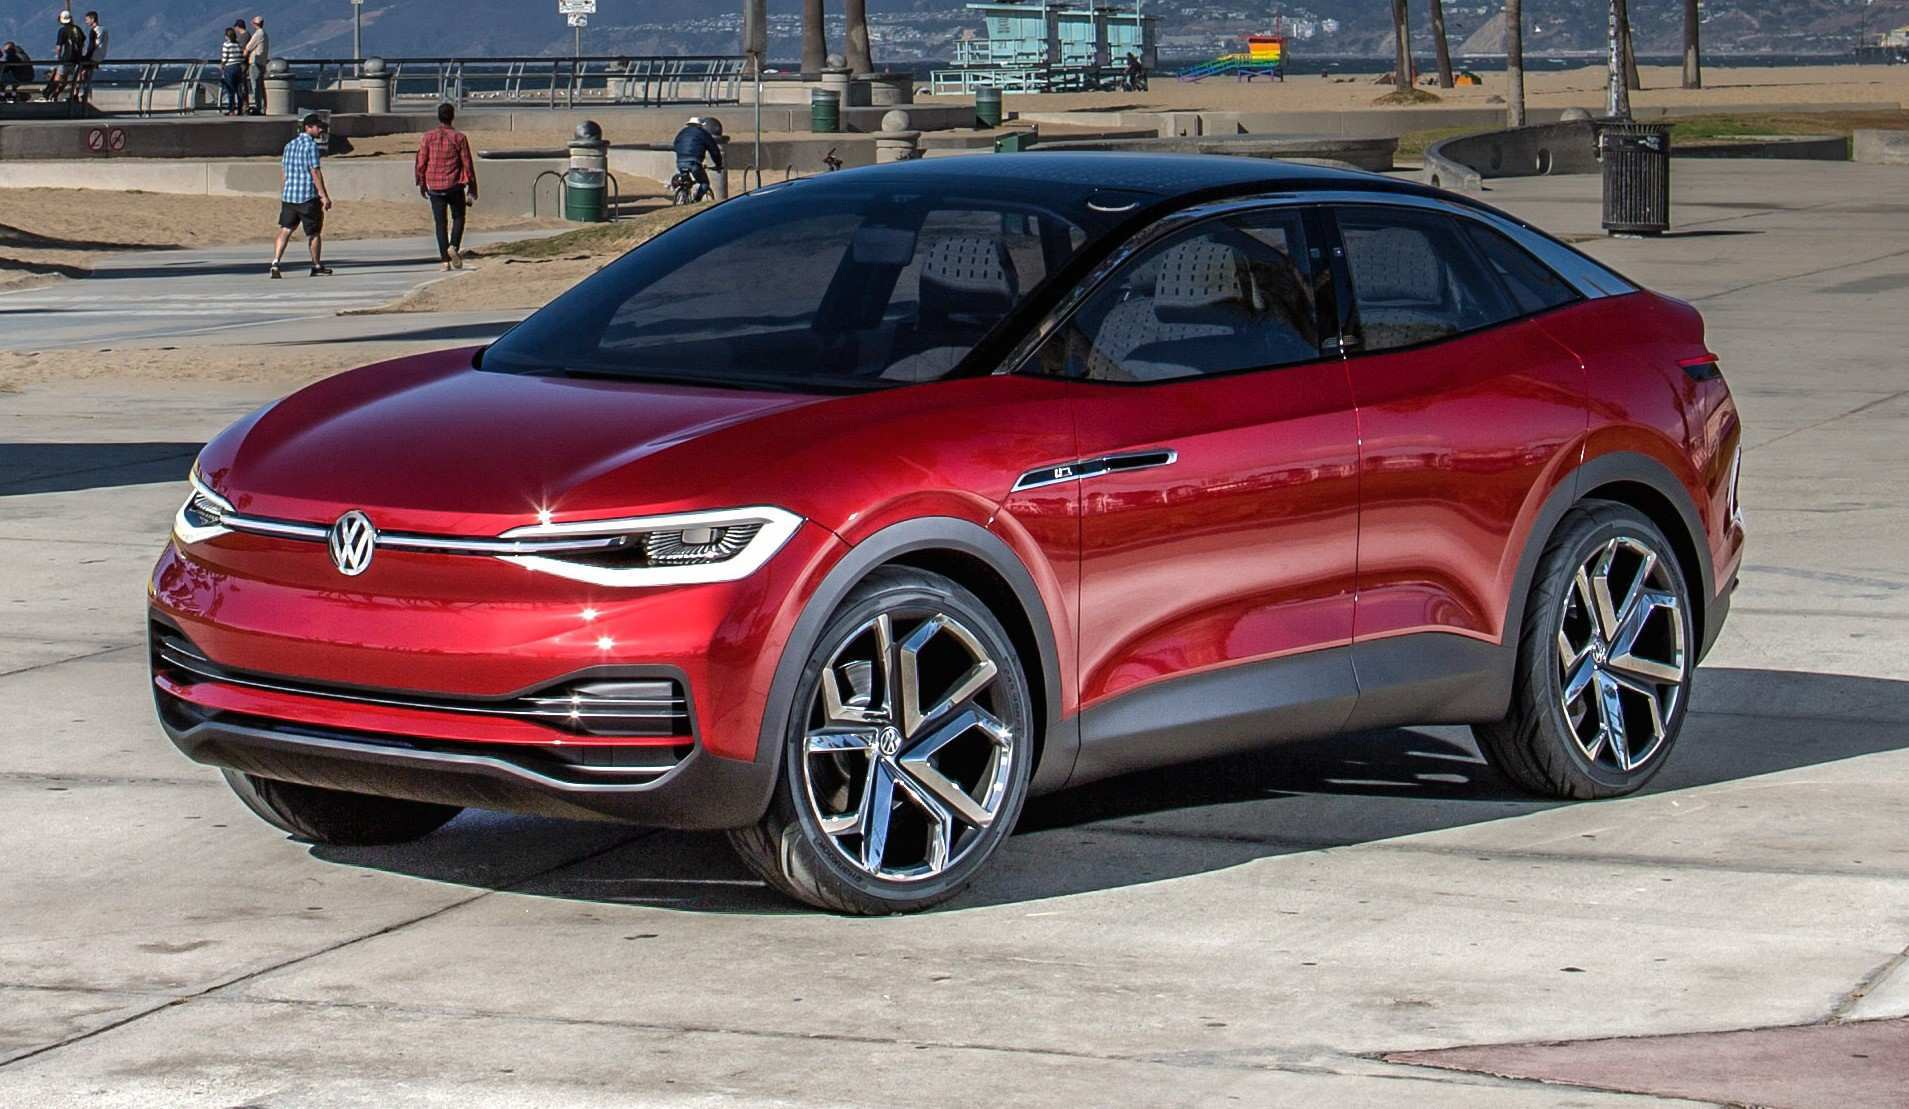 63 All New Volkswagen Electric Suv 2020 Photos